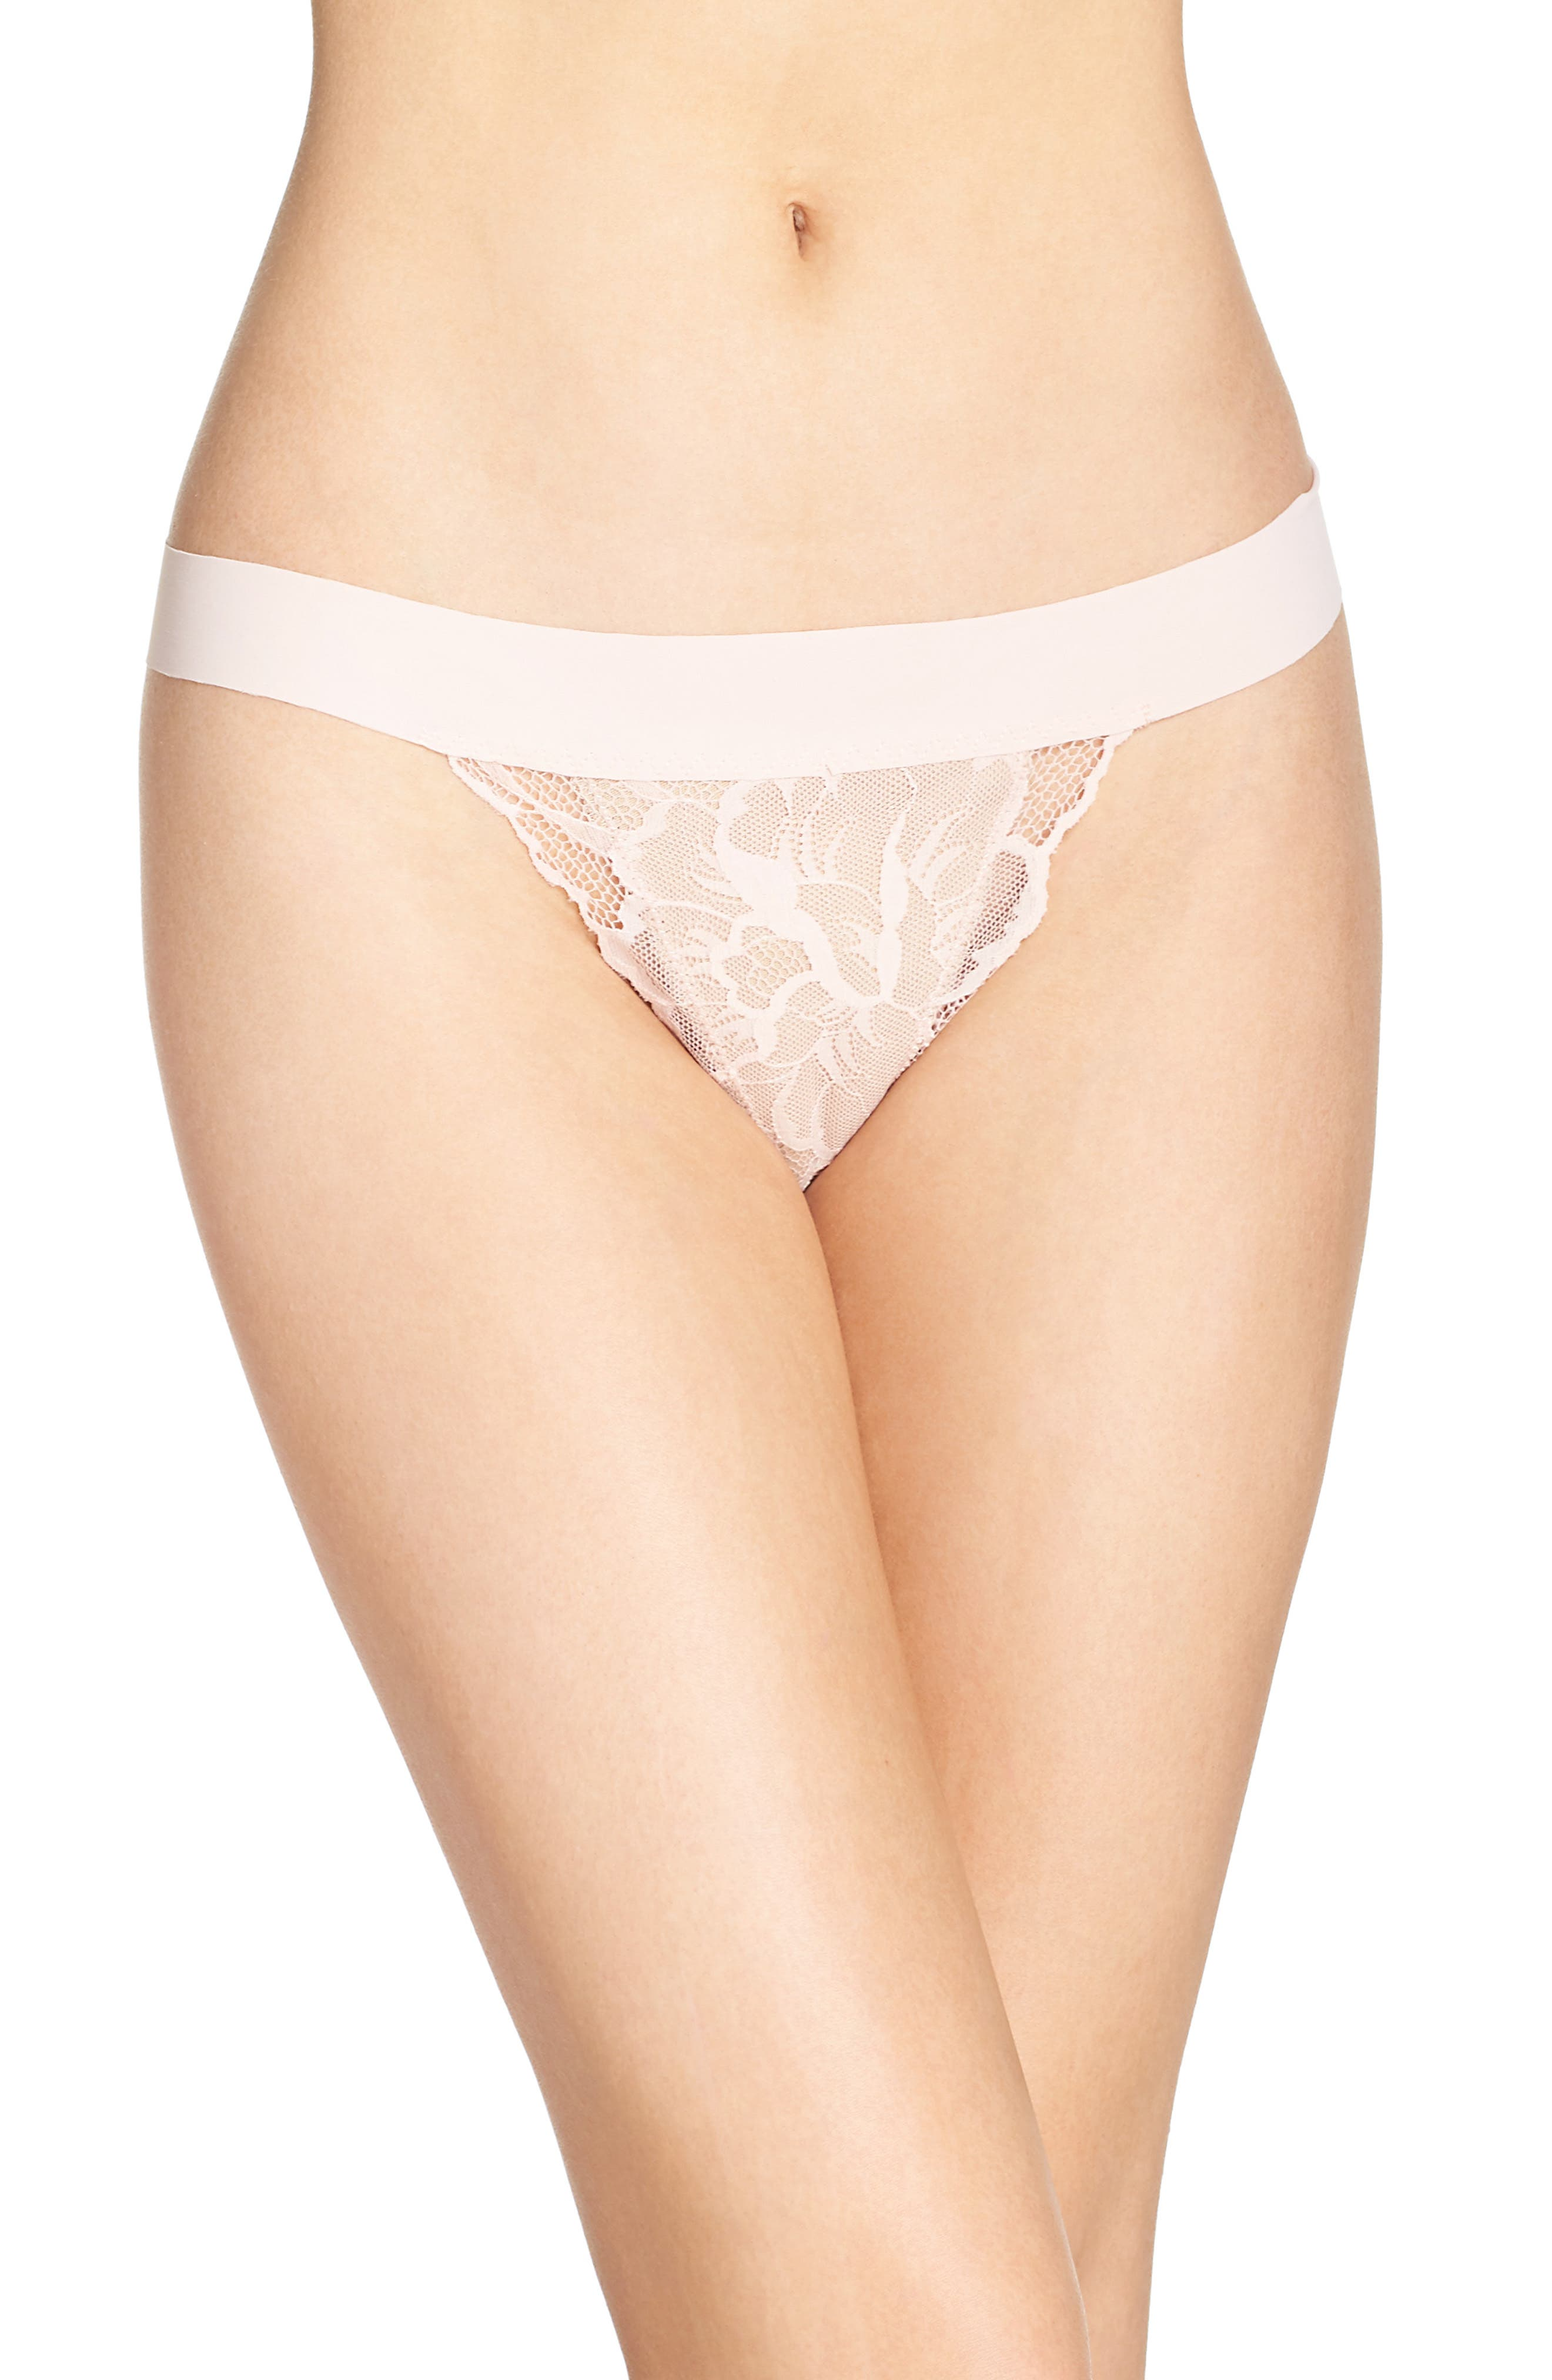 Main Image - Commando 'Double Take' Lace G-String Thong